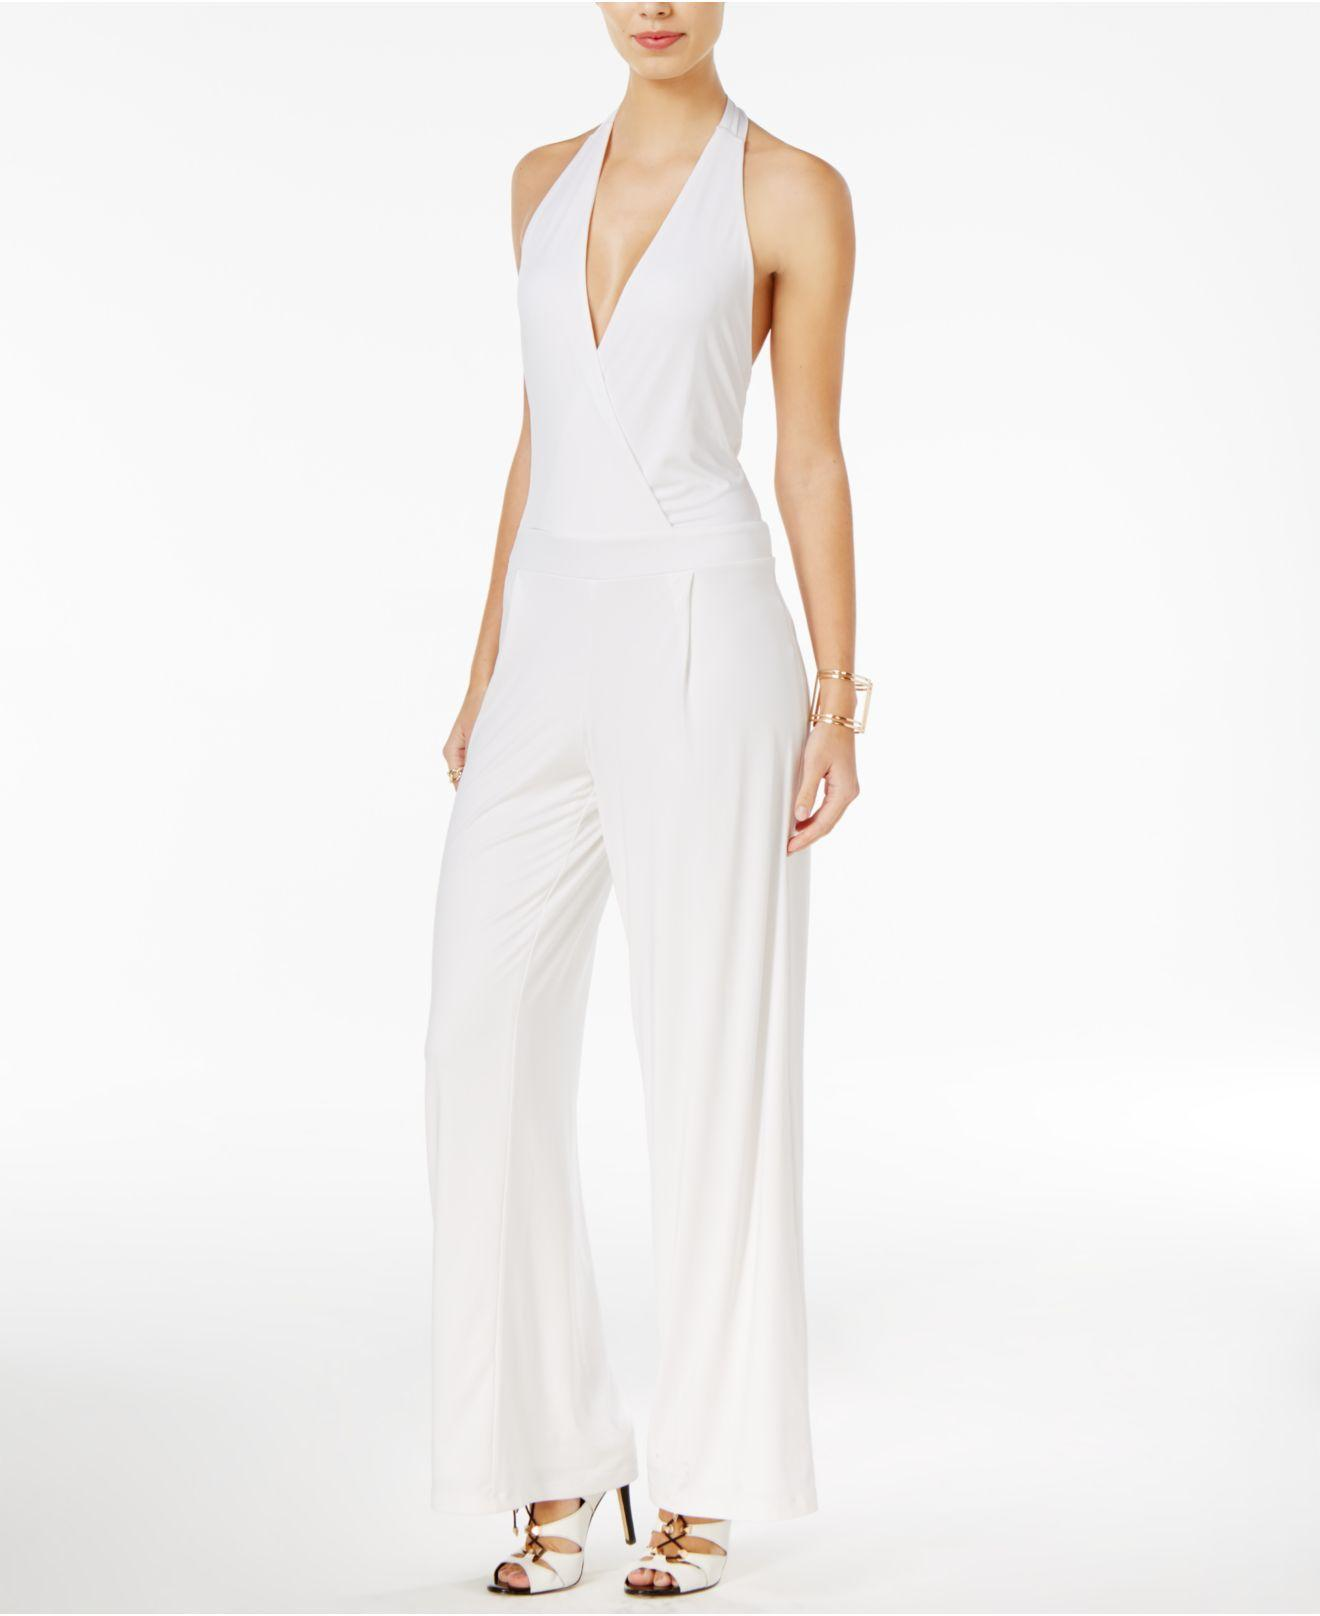 072cbfd717f0 Lyst - Guess Roswell Open-back Off-the-shoulder Jumpsuit in White